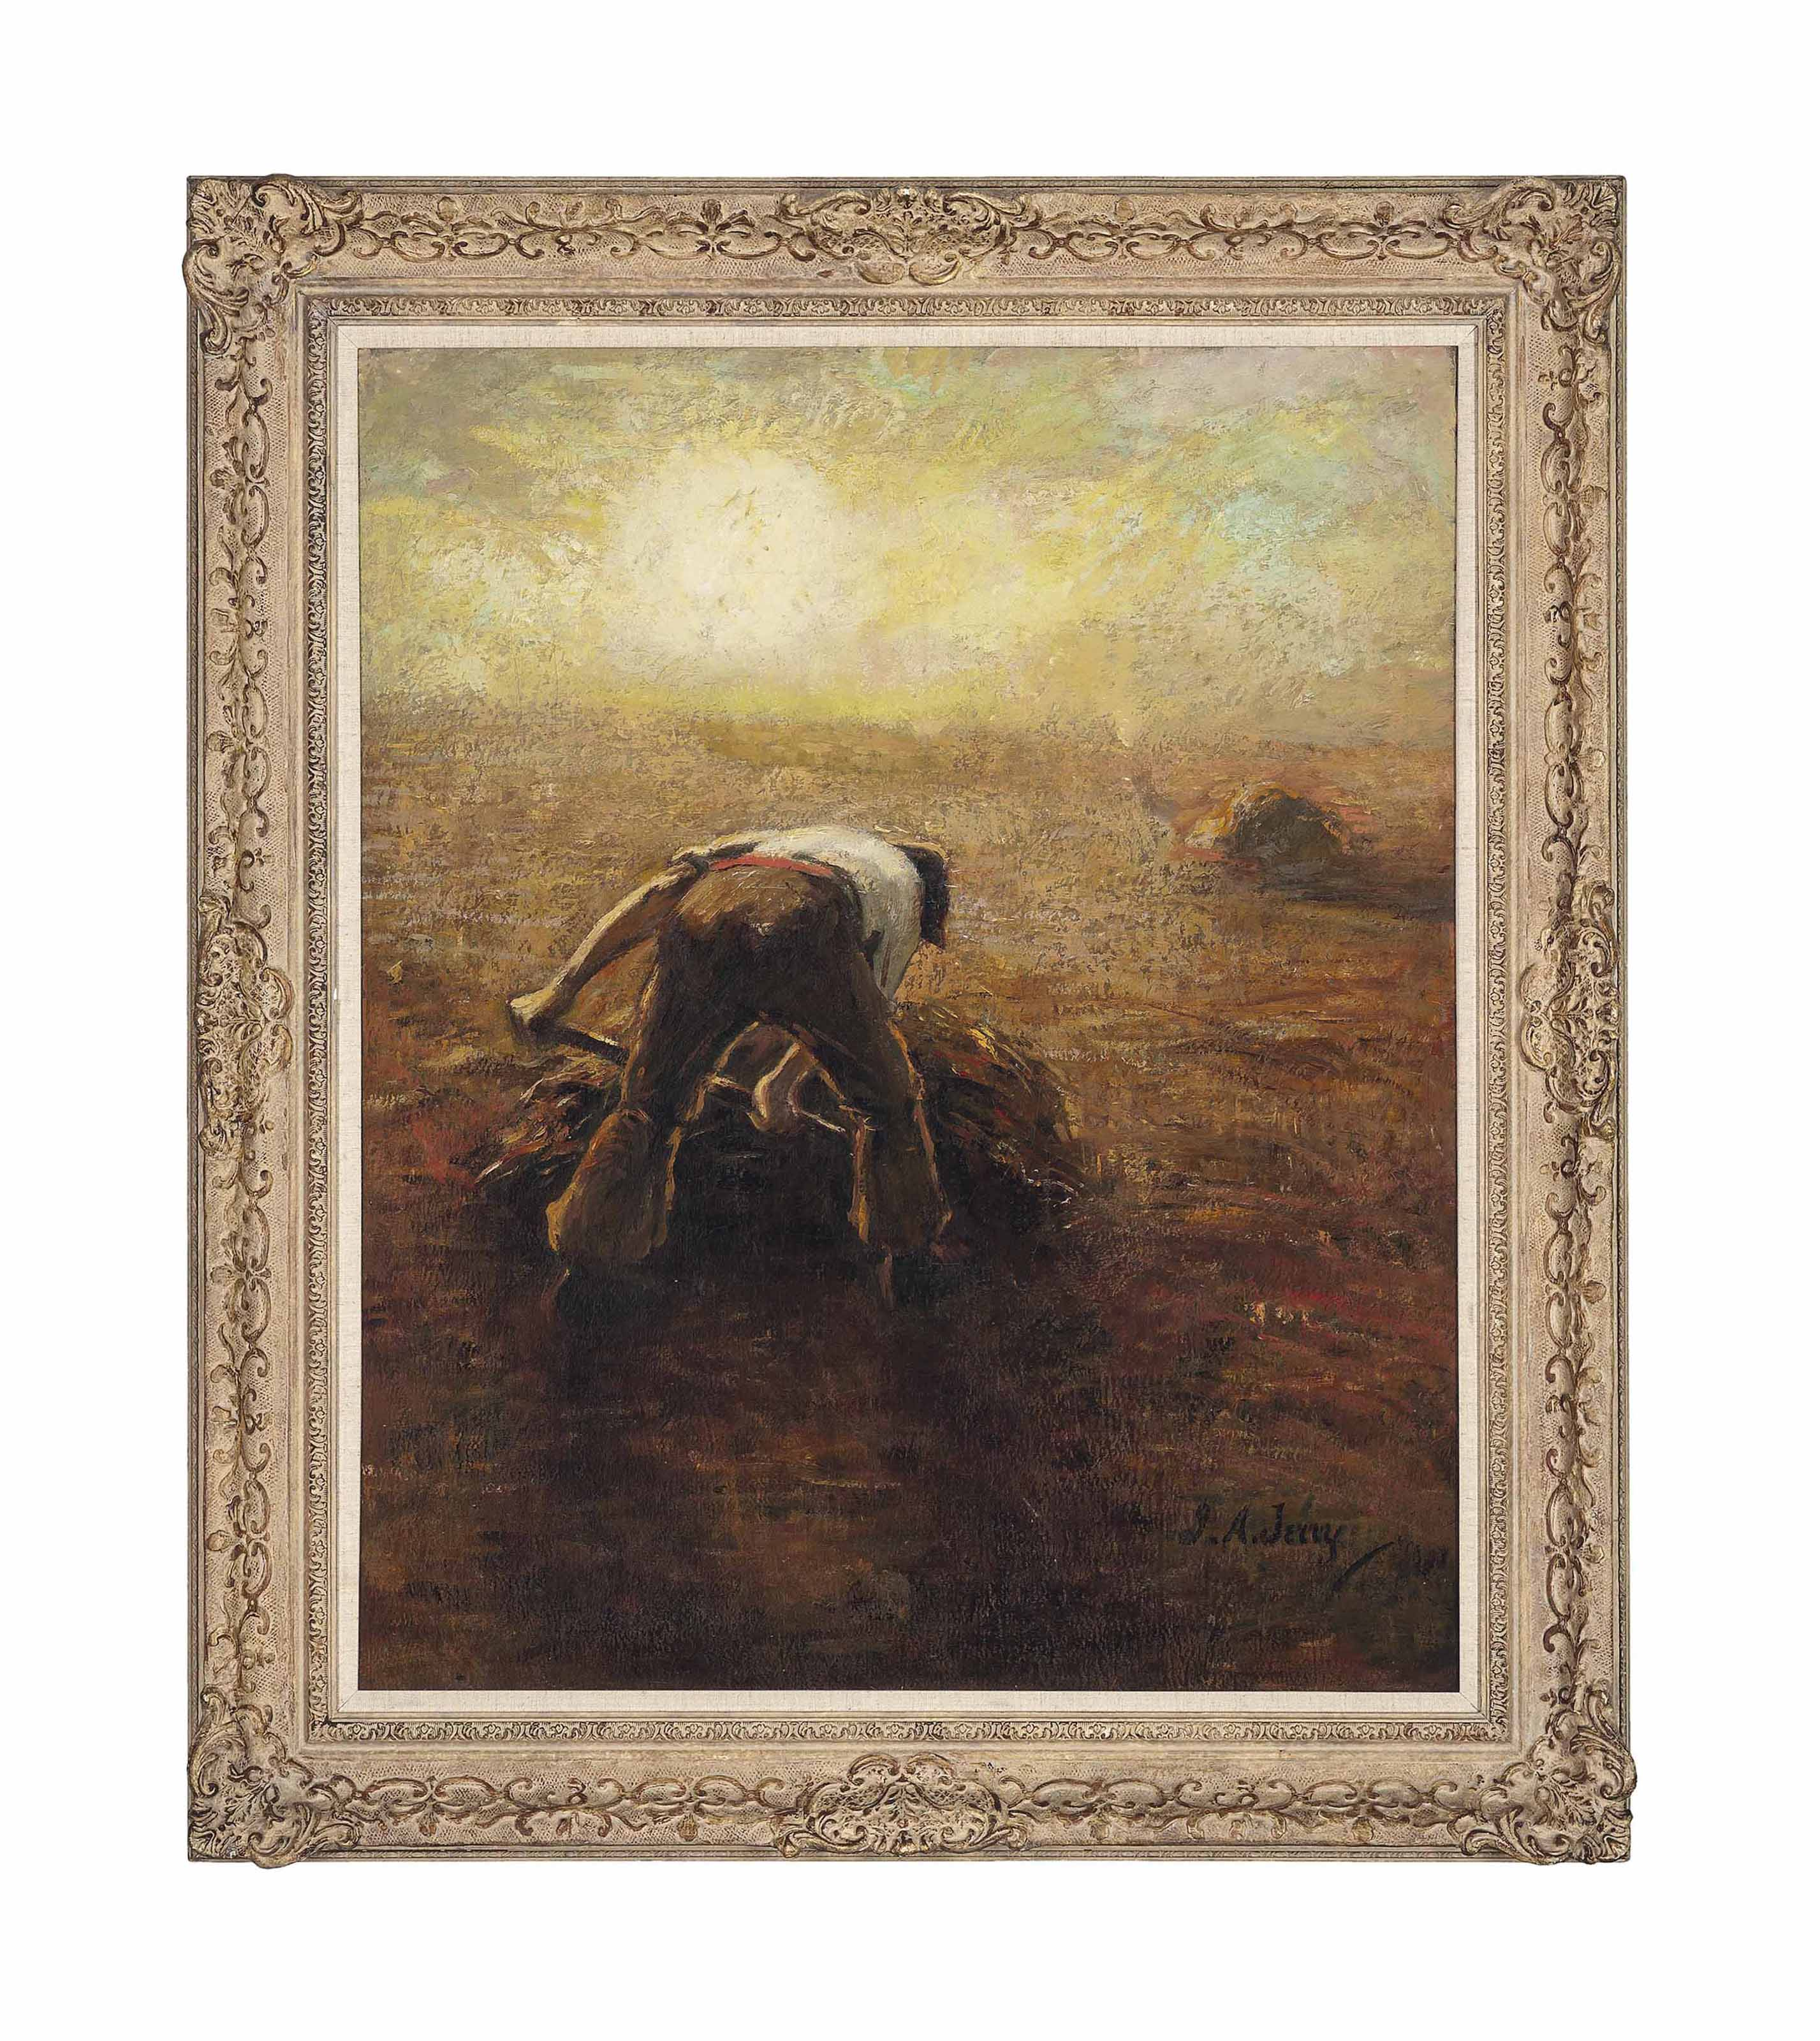 The field worker, early evening